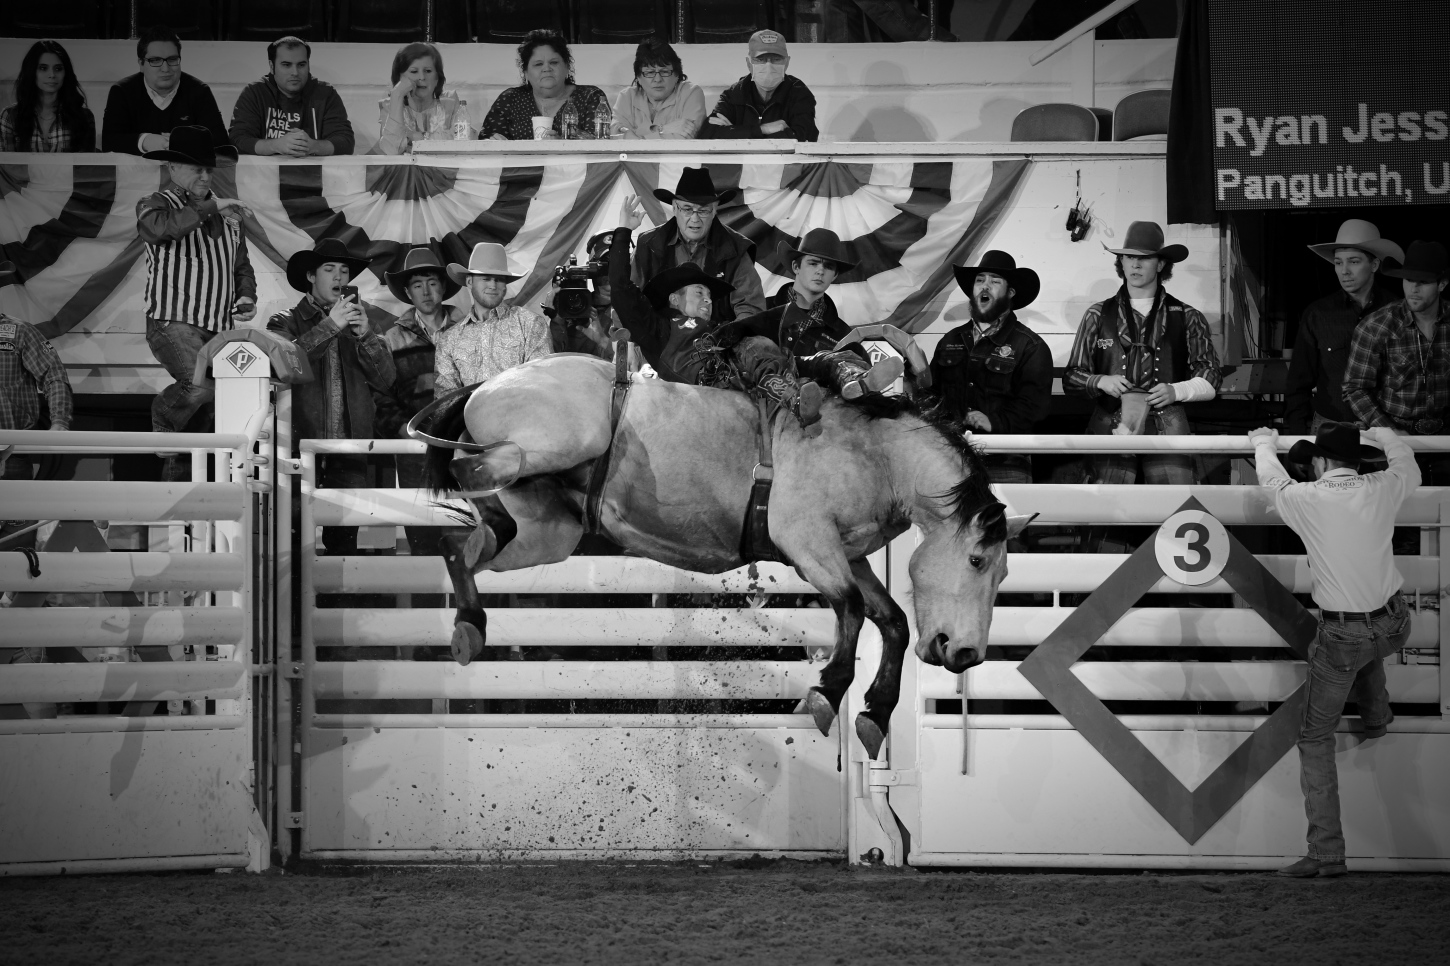 Neal gay rodeo title